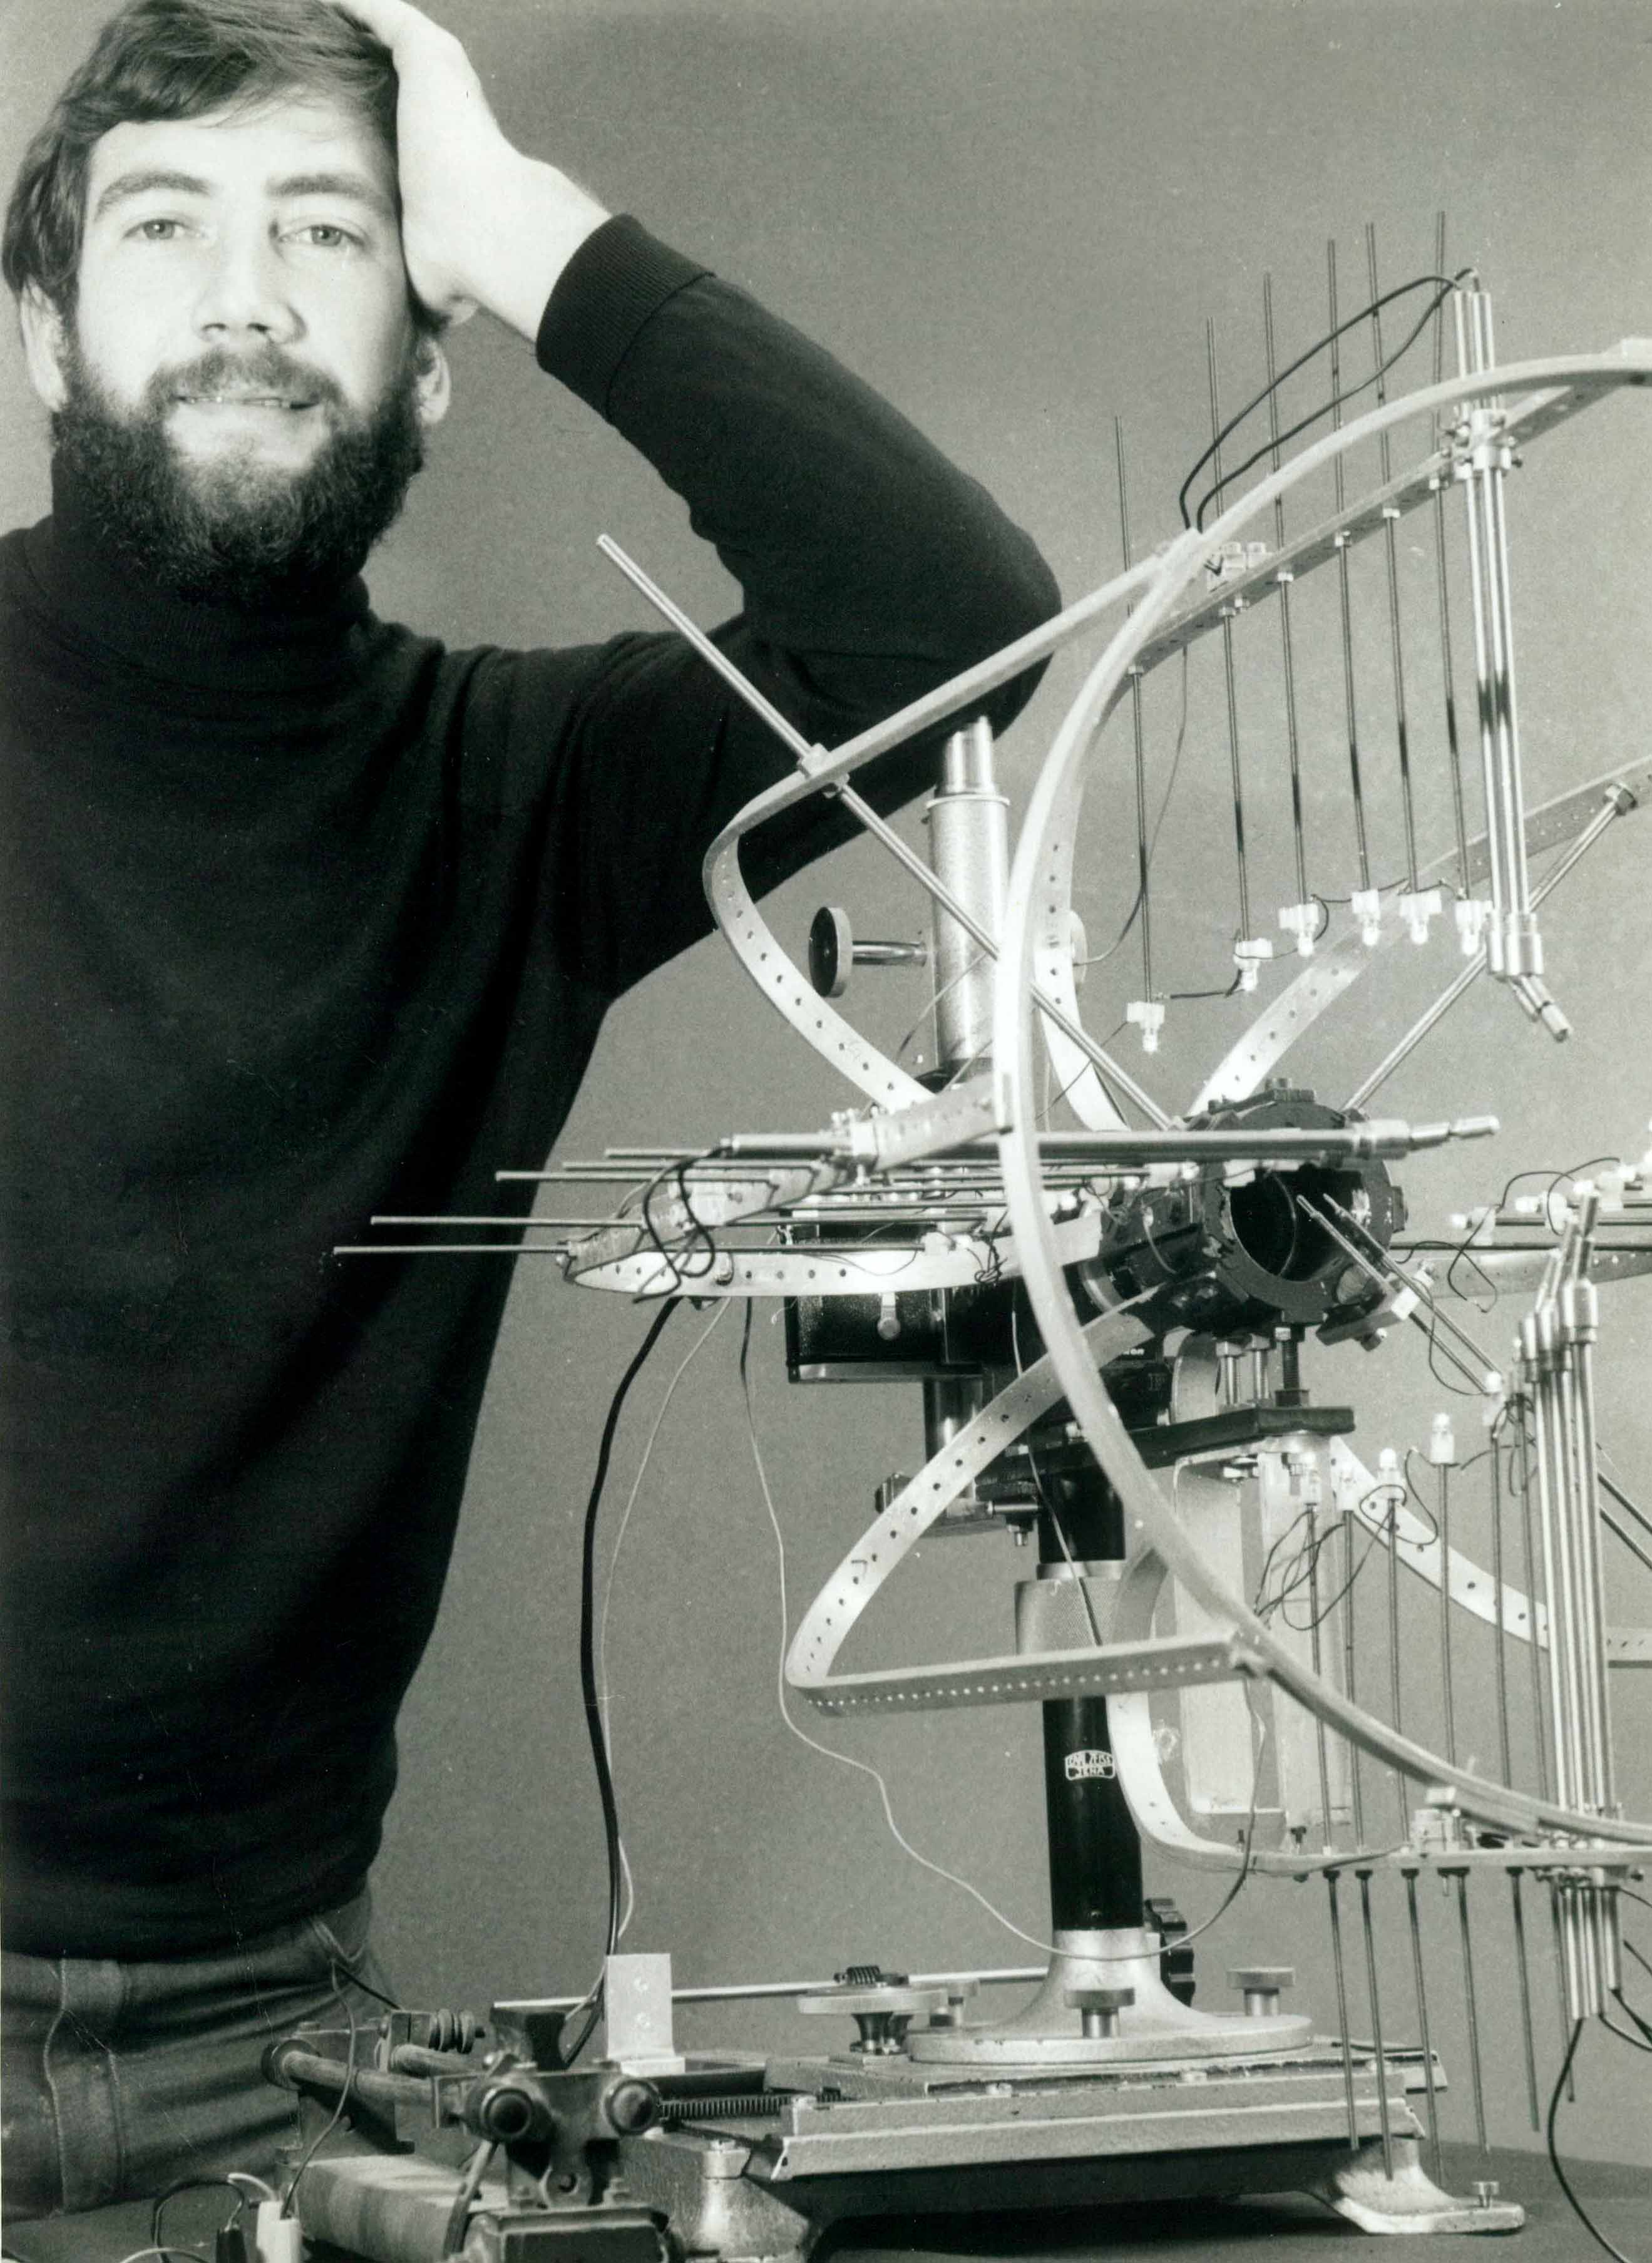 Brien Holden with his construction to measure corneal topography (PhD thesis).